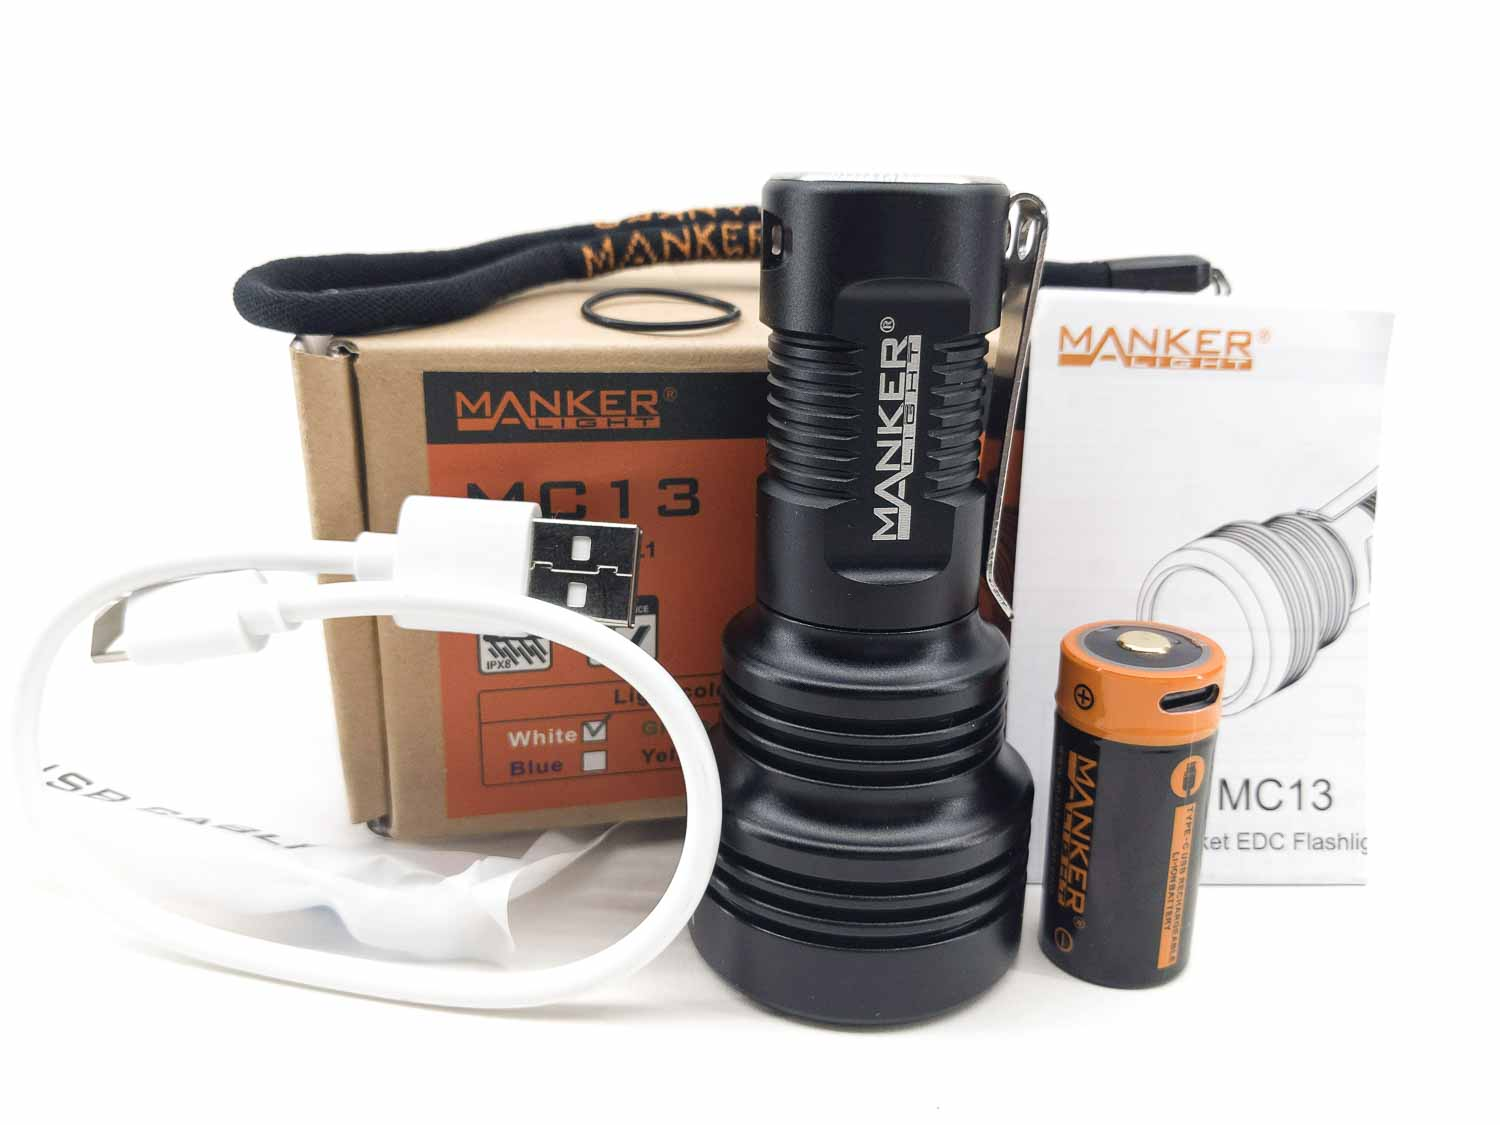 flashlight accessories of Manker MD13